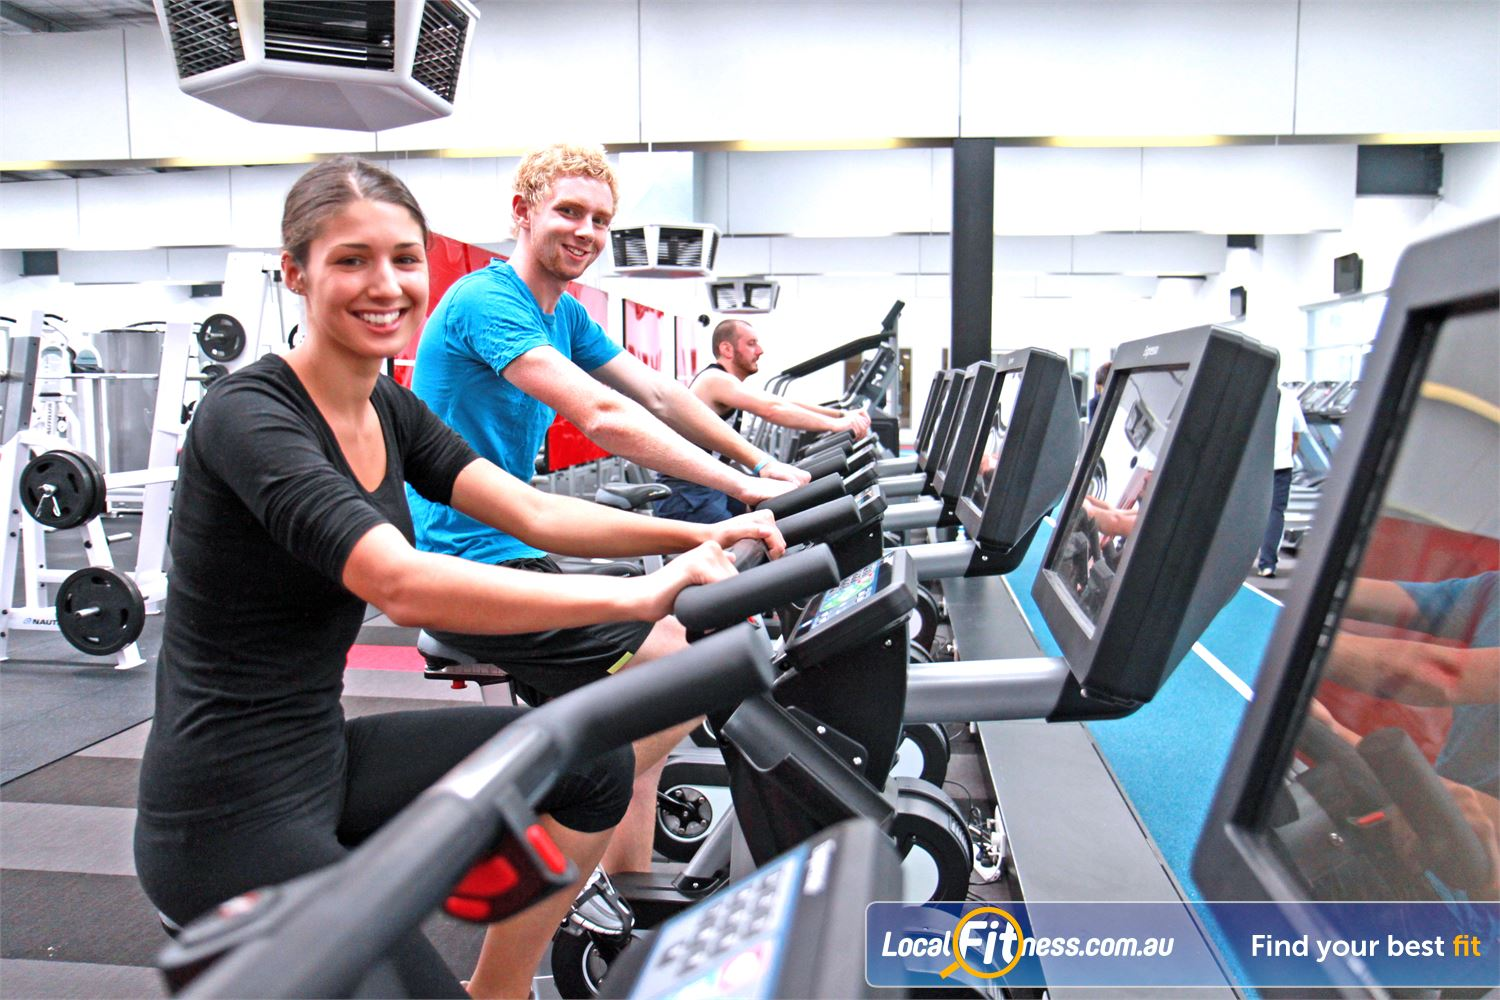 Genesis Fitness Clubs Maidstone Genesis Maidstone provides a fun and friendly cardio experience.